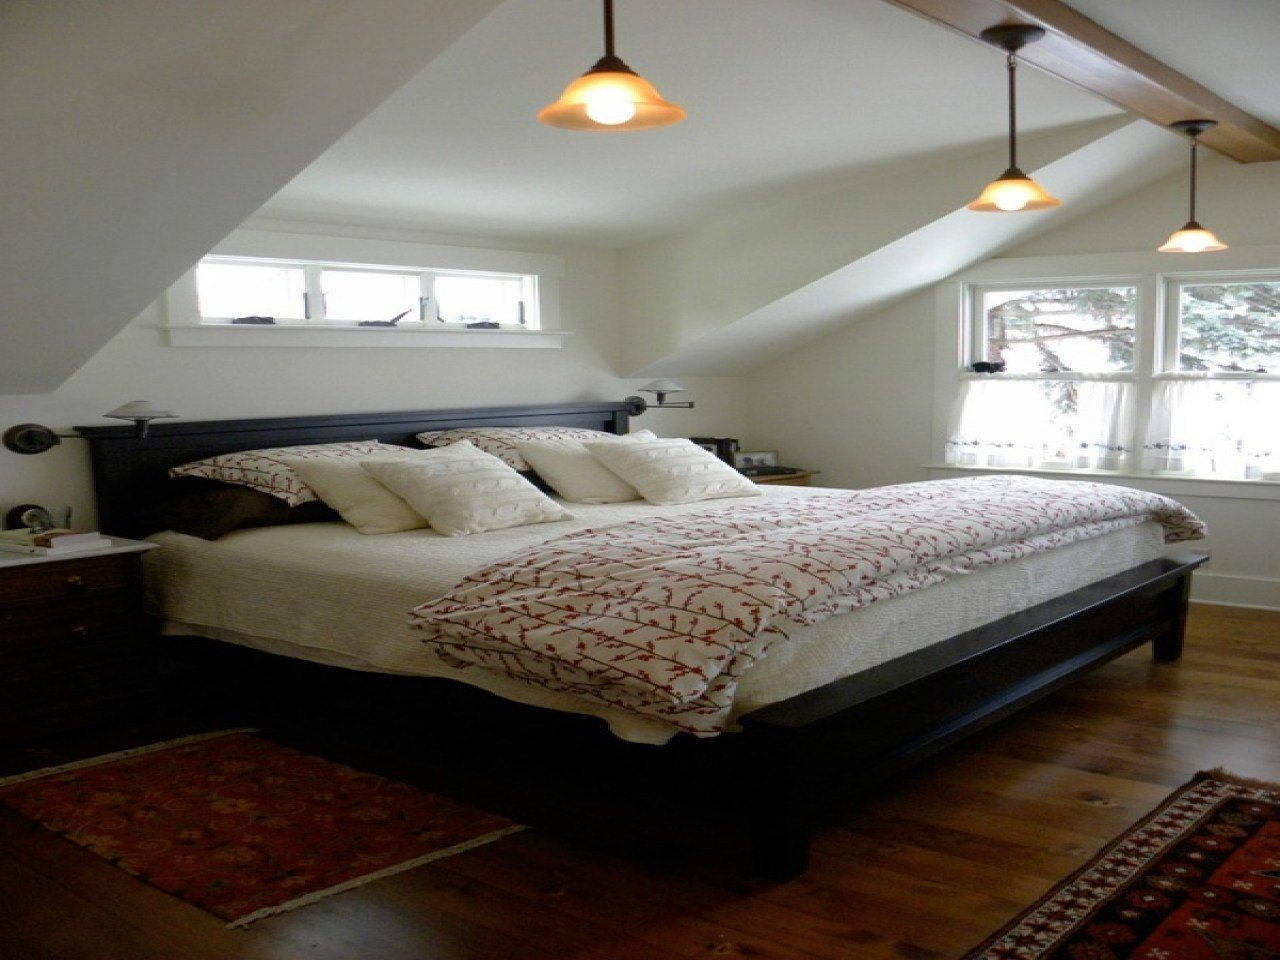 Best Shed Dormer Inside Bedroom Small Windows Above Bed Designs With Pictures